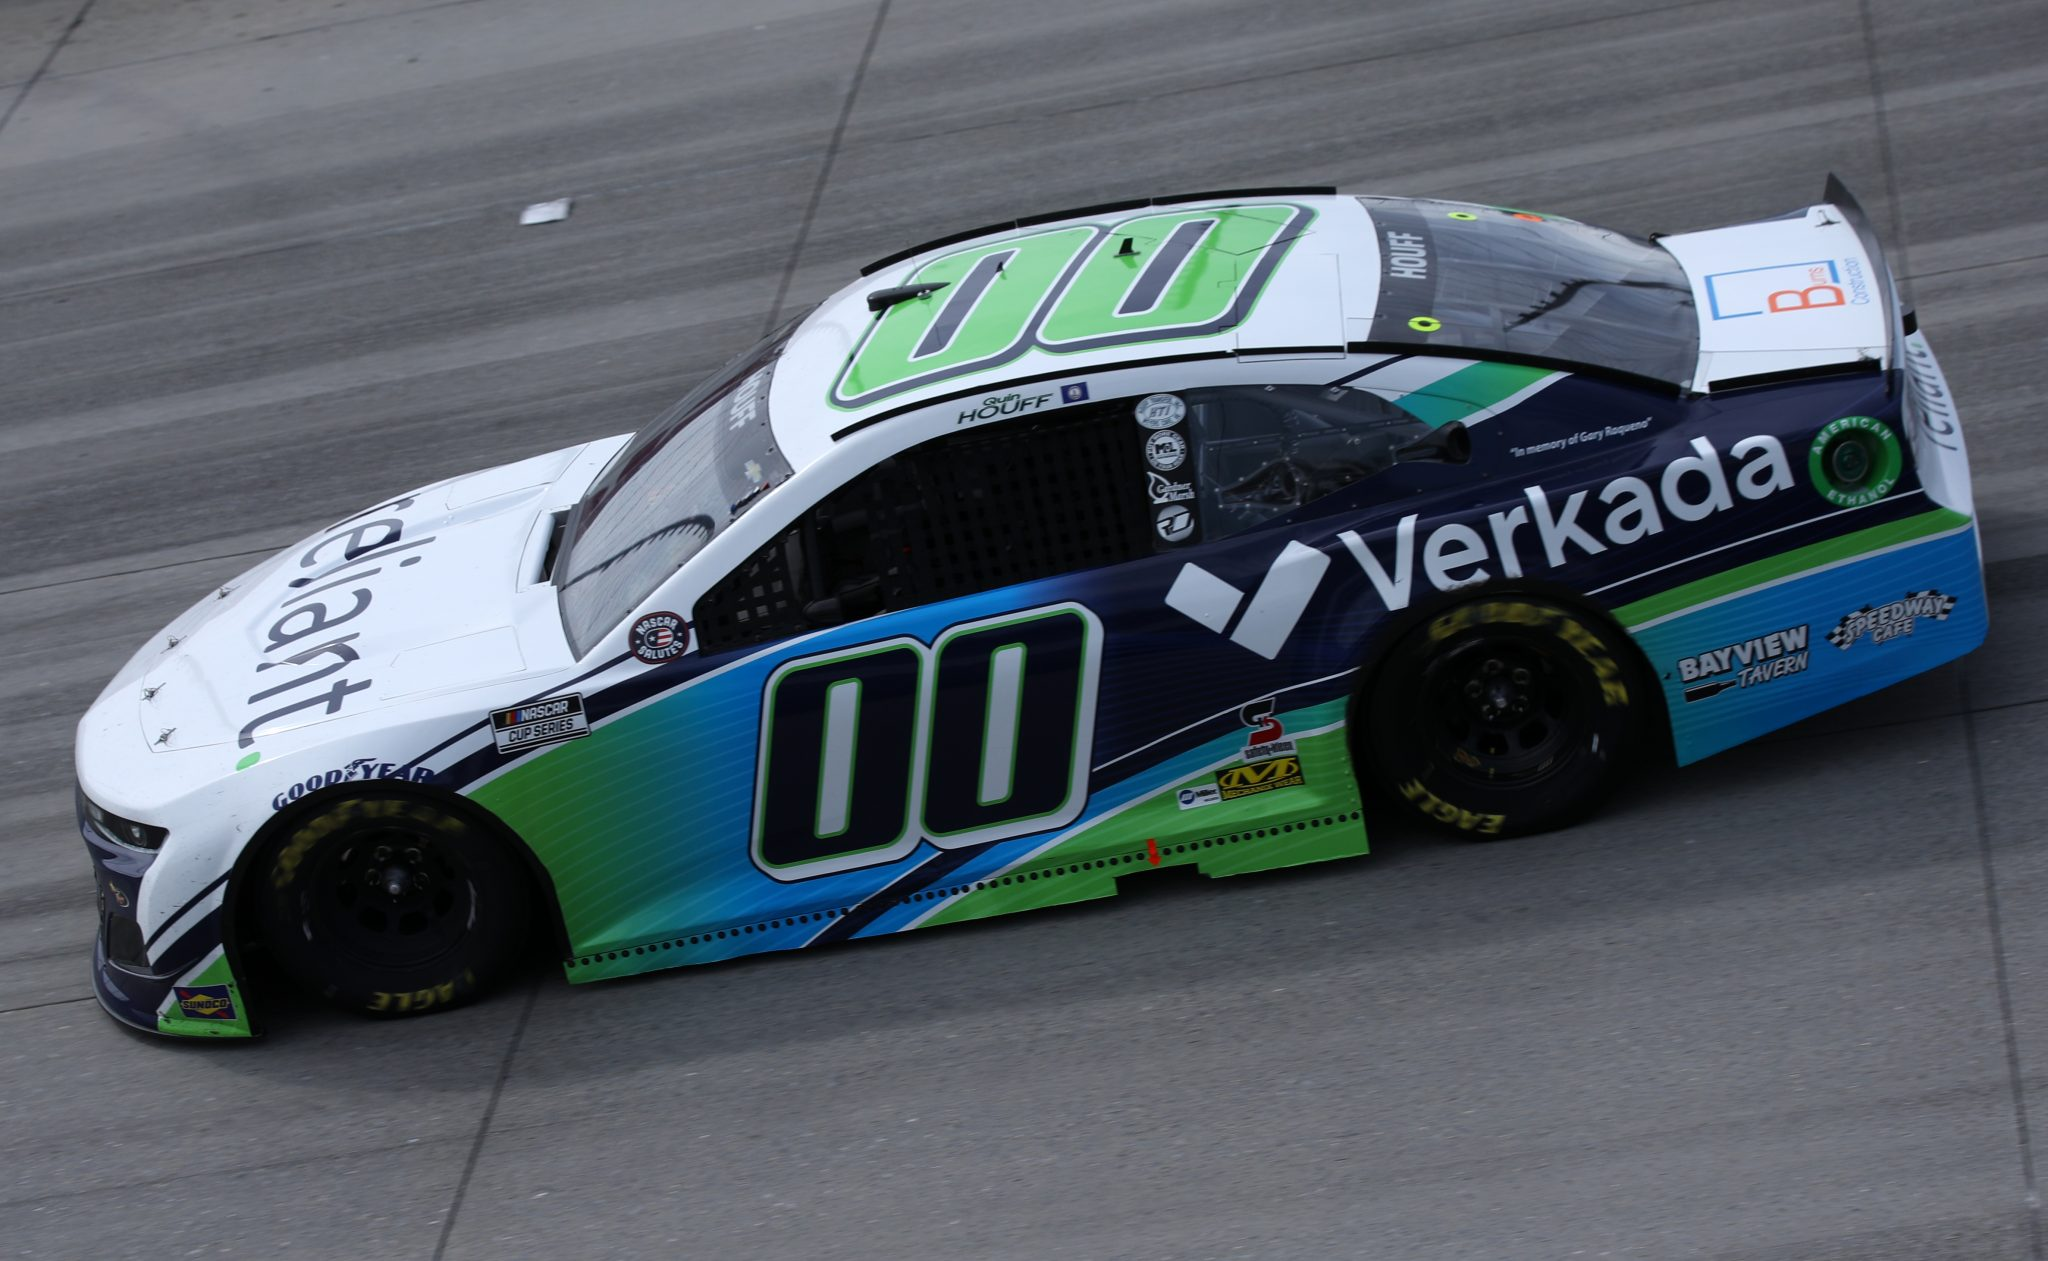 DOVER, DELAWARE - MAY 16: Quin Houff, driver of the #00 Reliant/Verkada Chevrolet, races during the NASCAR Cup Series Drydene 400 at Dover International Speedway on May 16, 2021 in Dover, Delaware. (Photo by Sean Gardner/Getty Images) | Getty Images